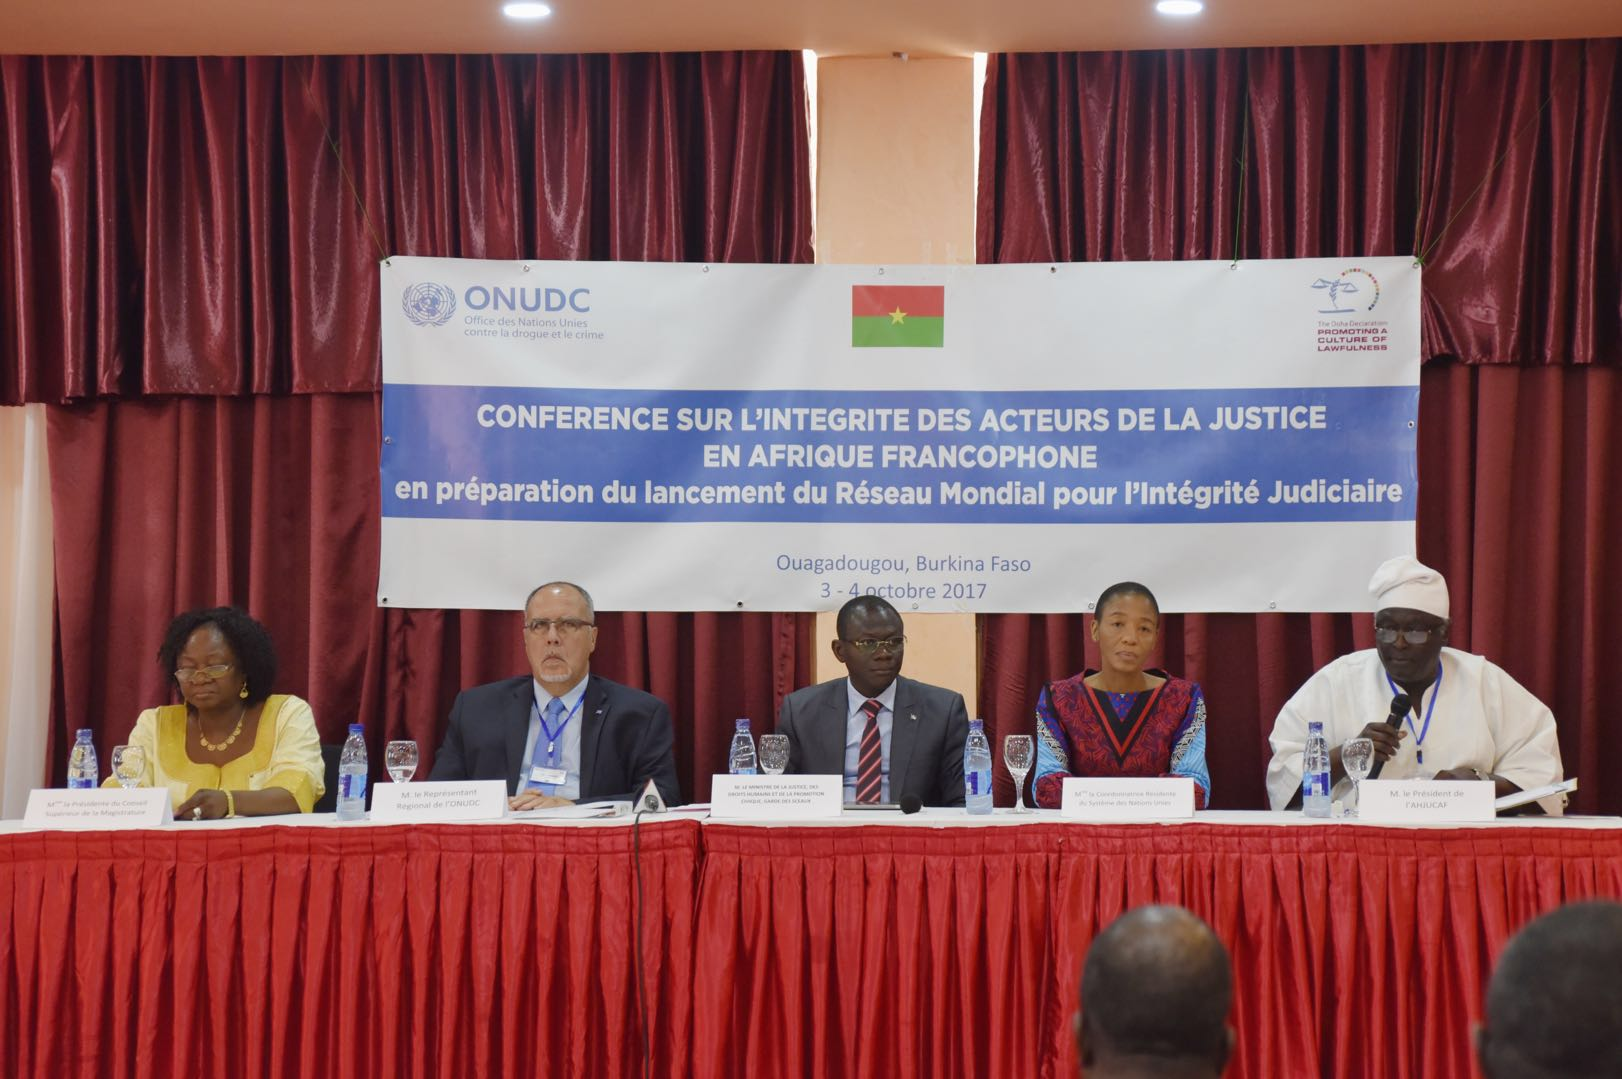 Francophone African judges adopted recommendations to strengthen judicial integrity and advance global anti-corruption efforts